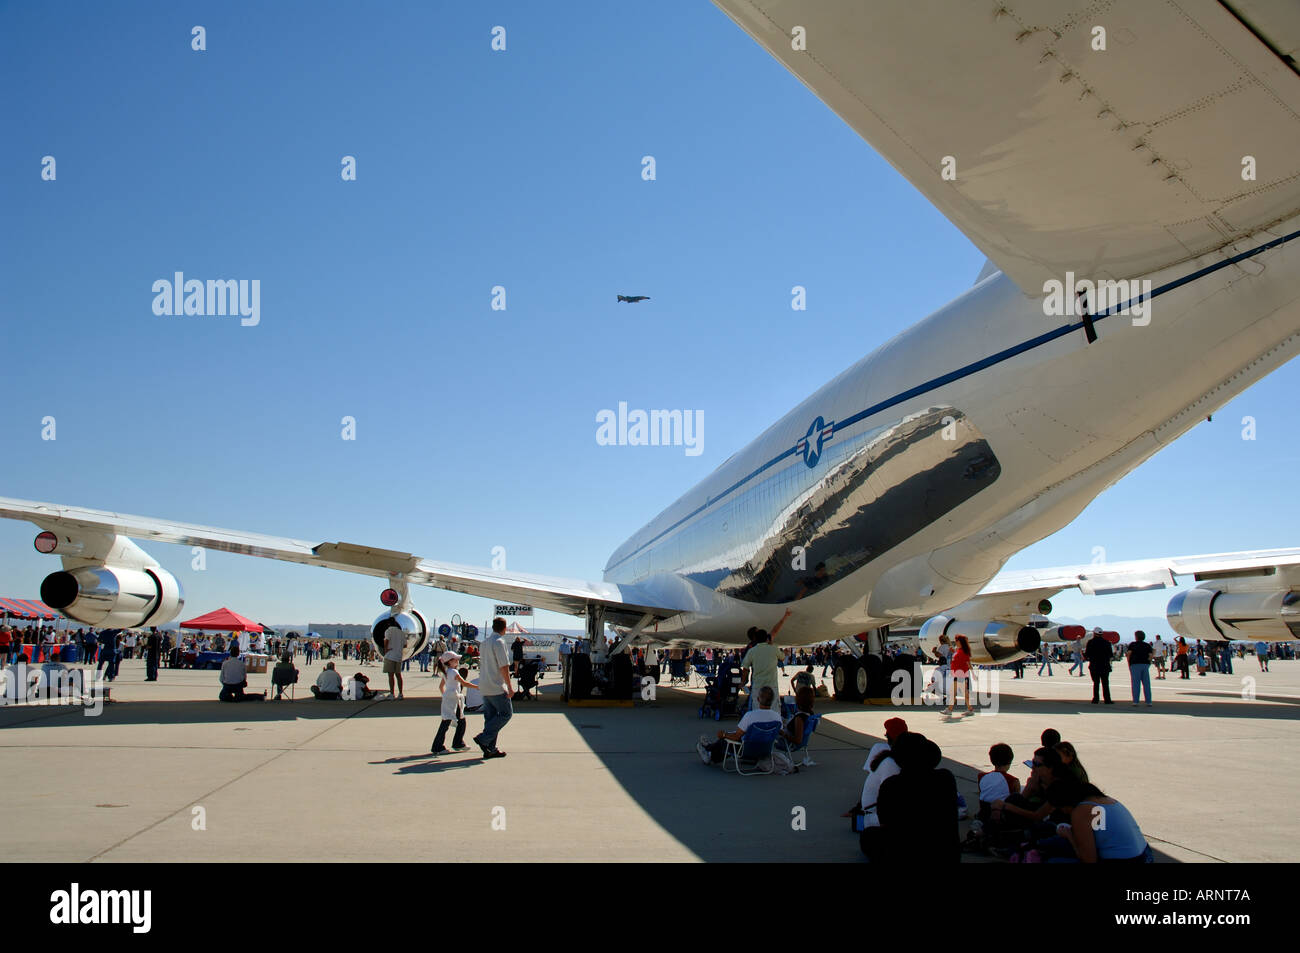 People resting under the fuselage of airplane at Edwards Air